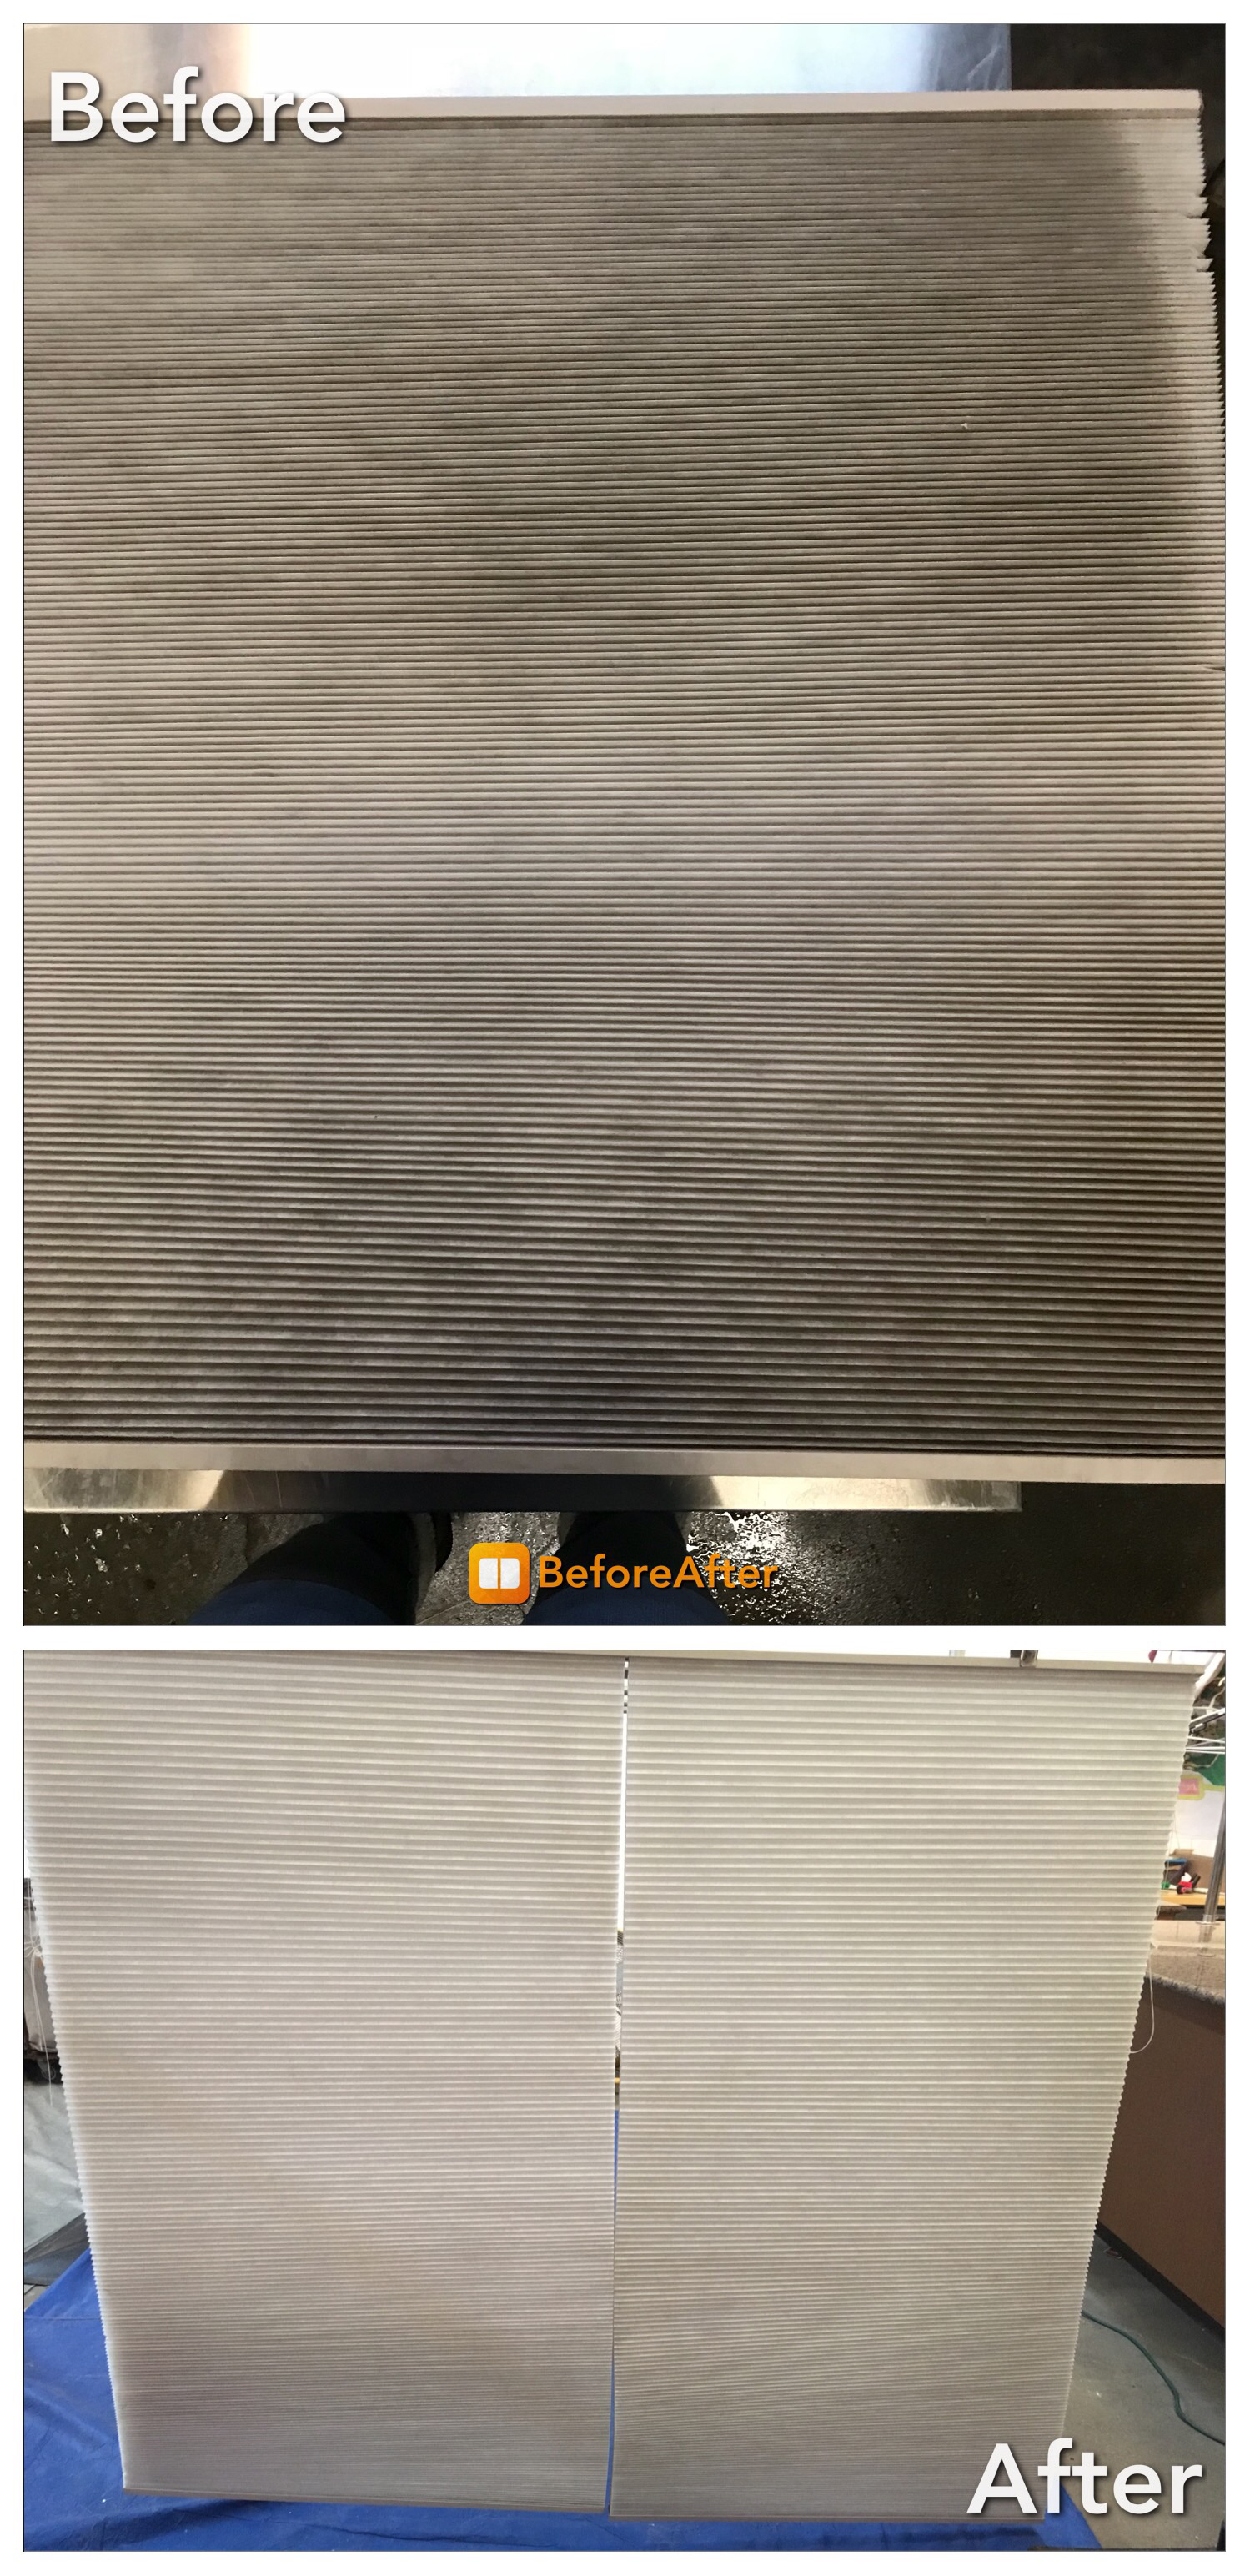 blinds we services is cleaning what our do call team date today a make blind with ultrasonic ltd revitalise